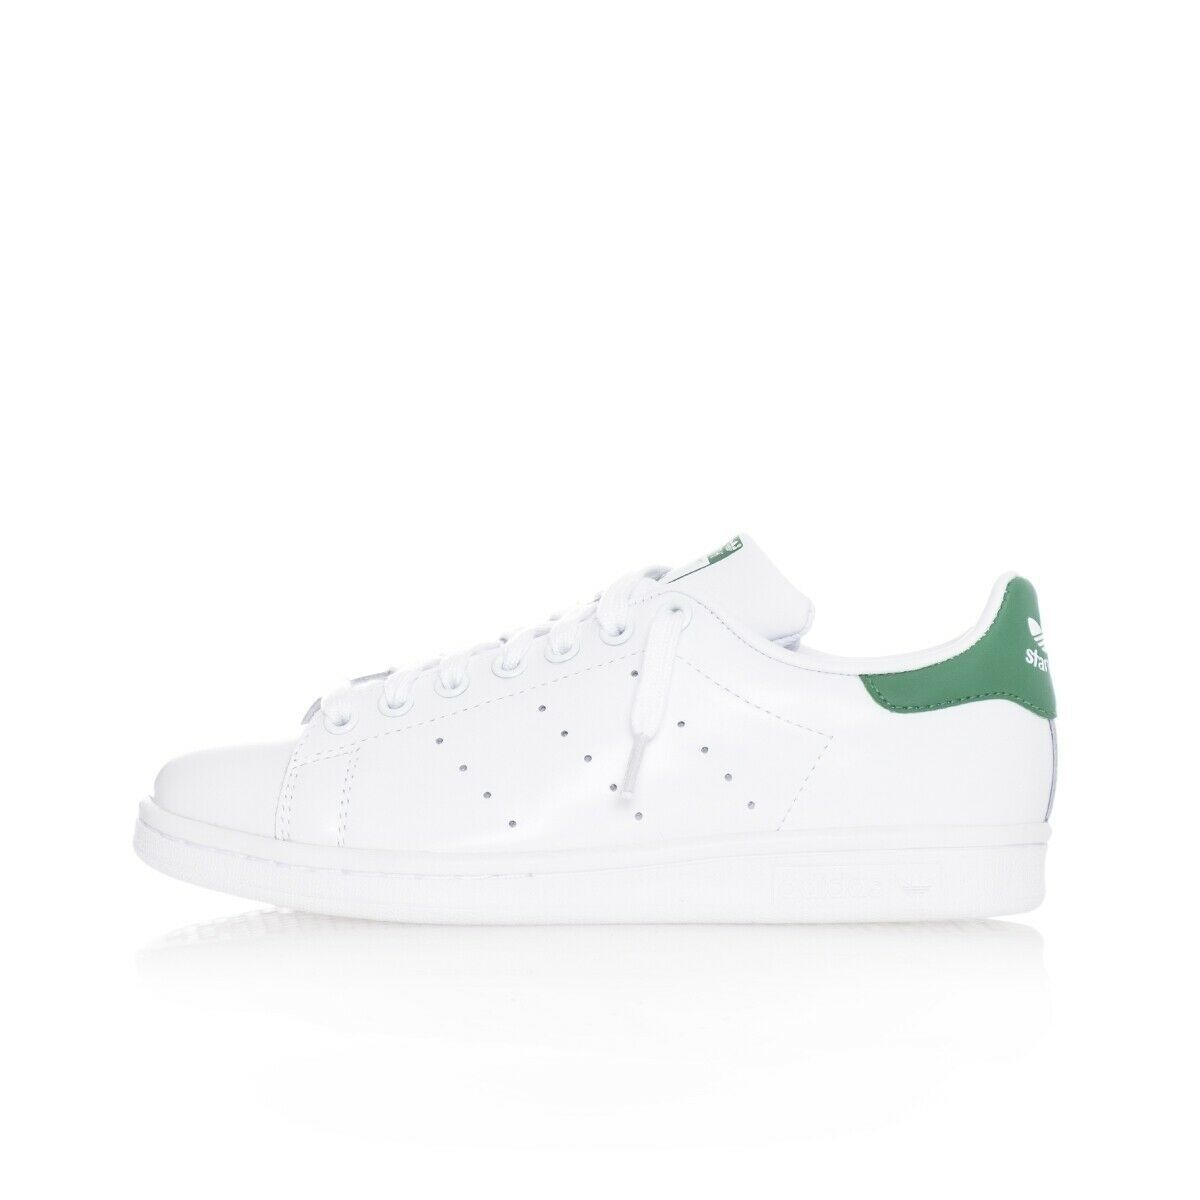 Primary image for SCHOENEN  UNISEX   ADIDAS STAN SMITH M20324  Bianco